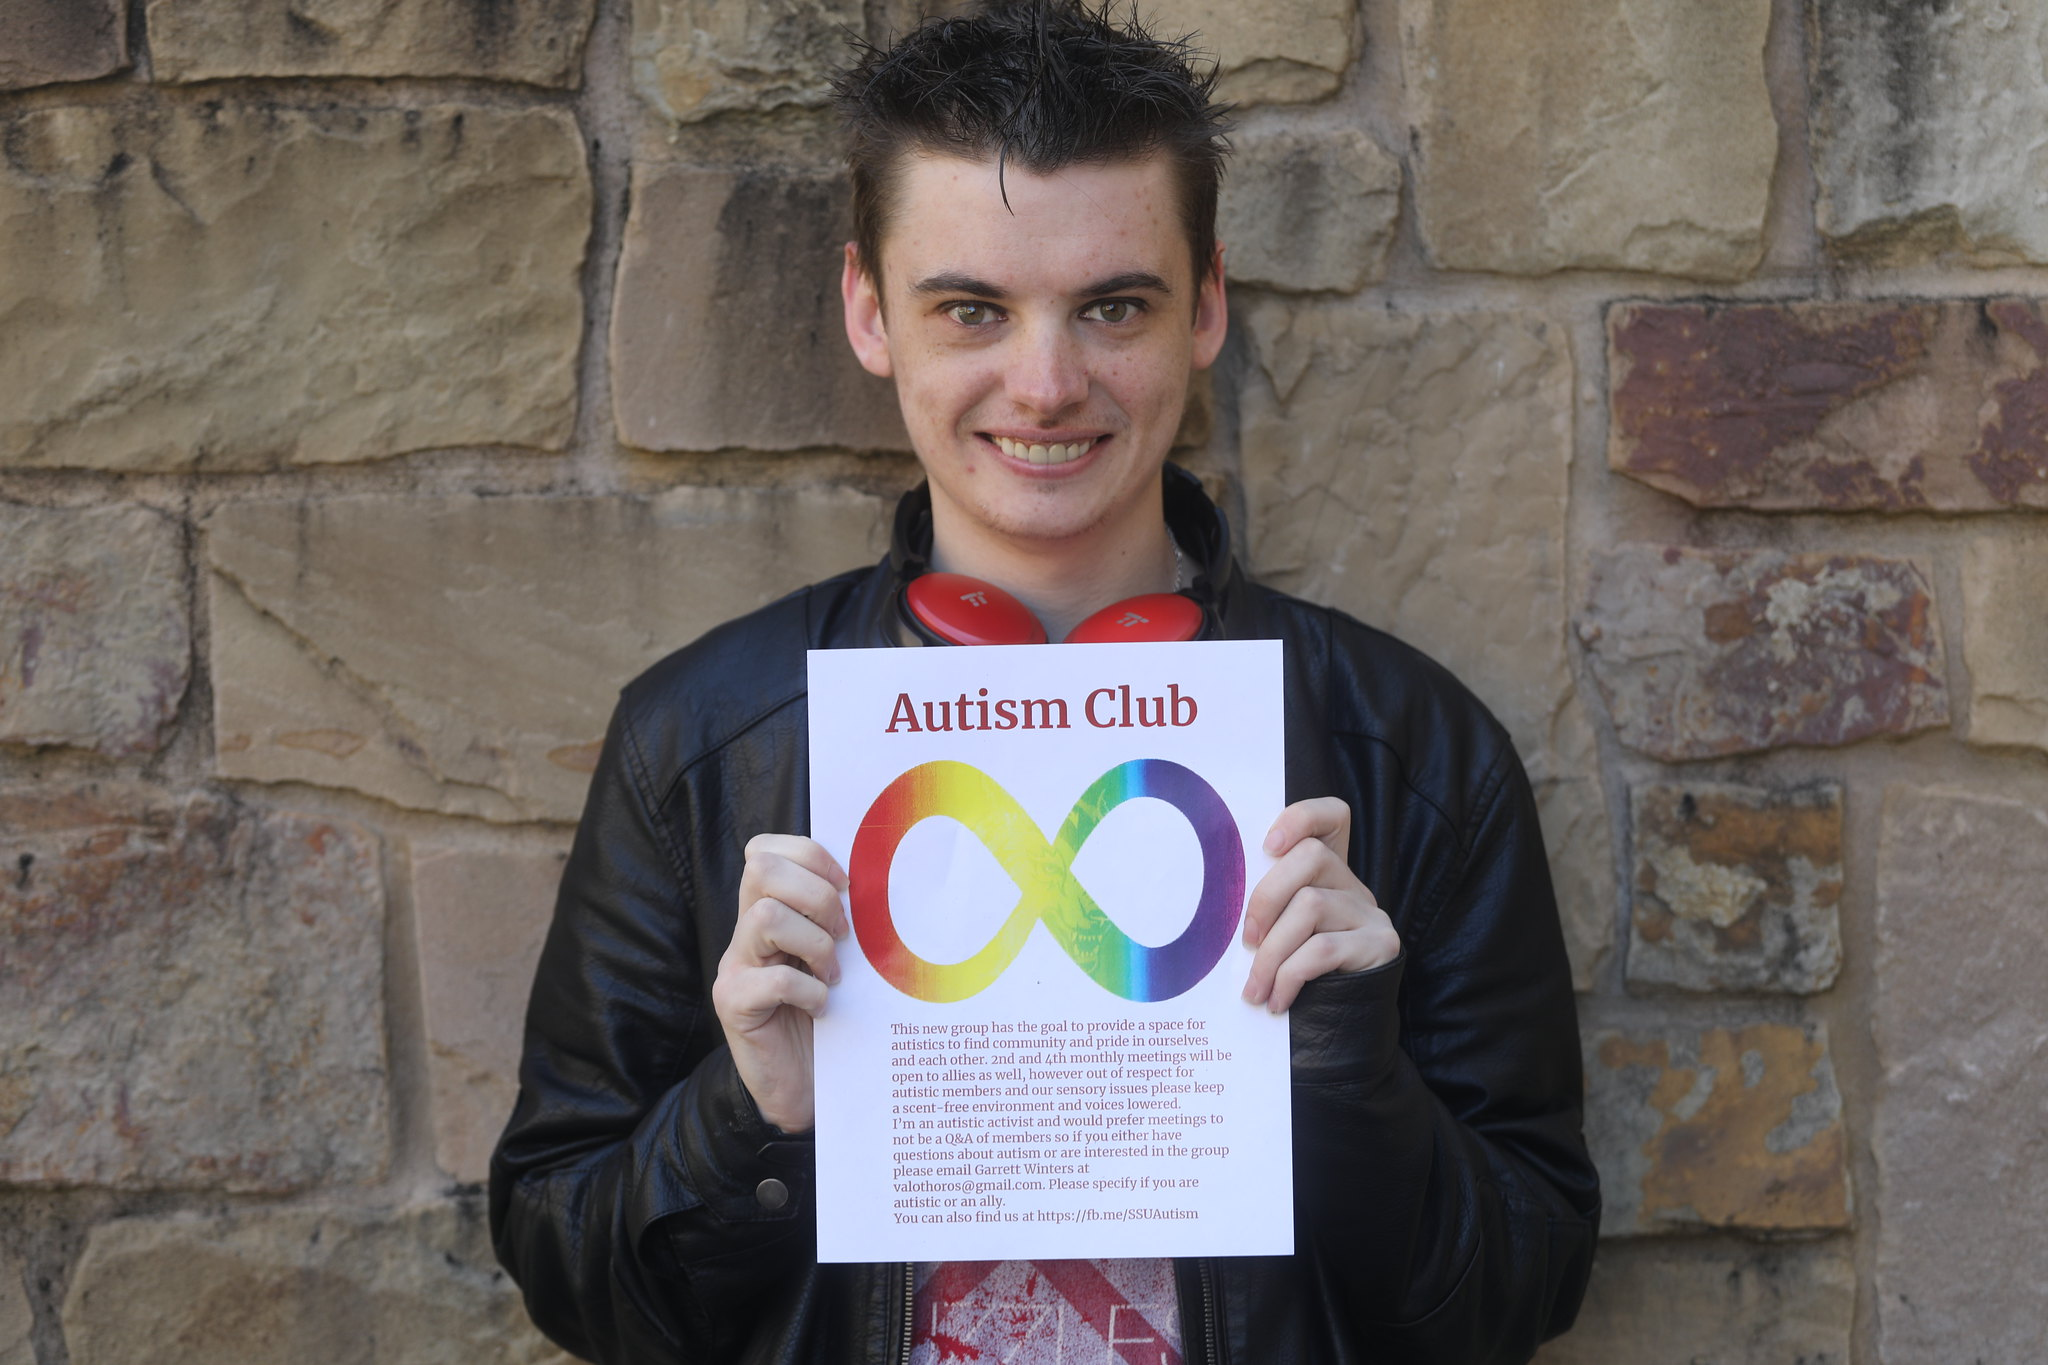 Garrett Winters, above, will be leading the club, which will meet once per week, in hopes of spreading awareness and inclusivity for those with autism.